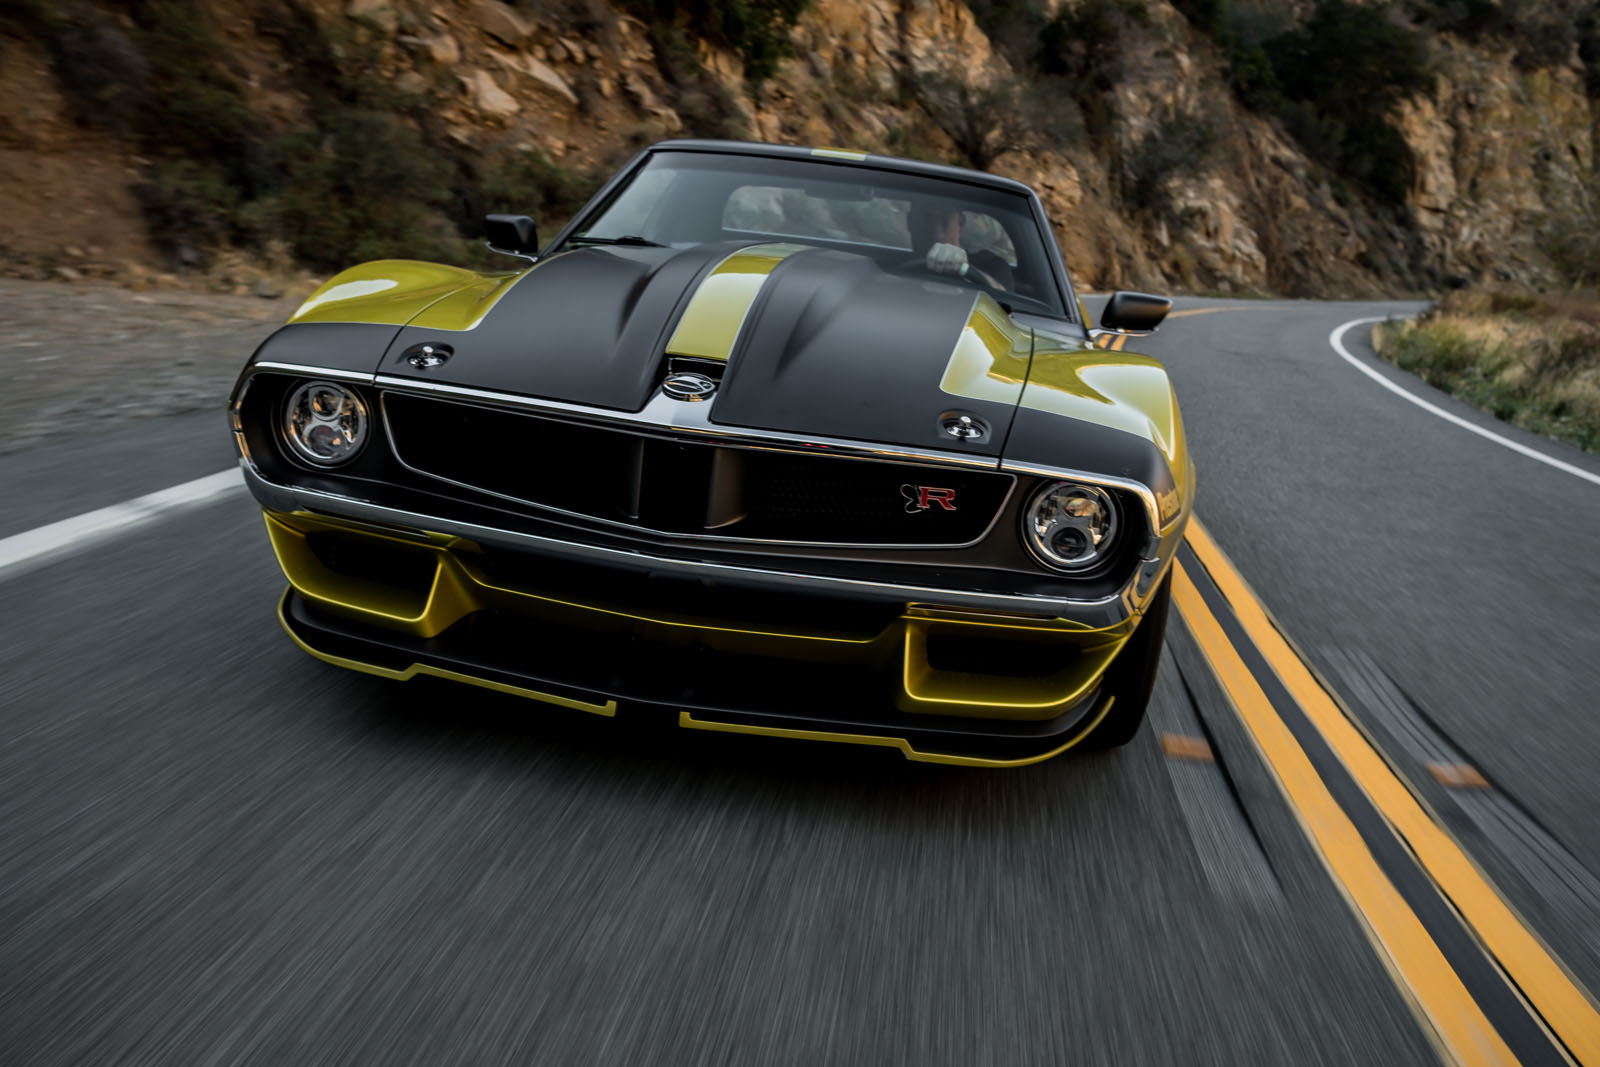 What It's Like to Drive a 1,000-HP AMC Javelin That Cost a